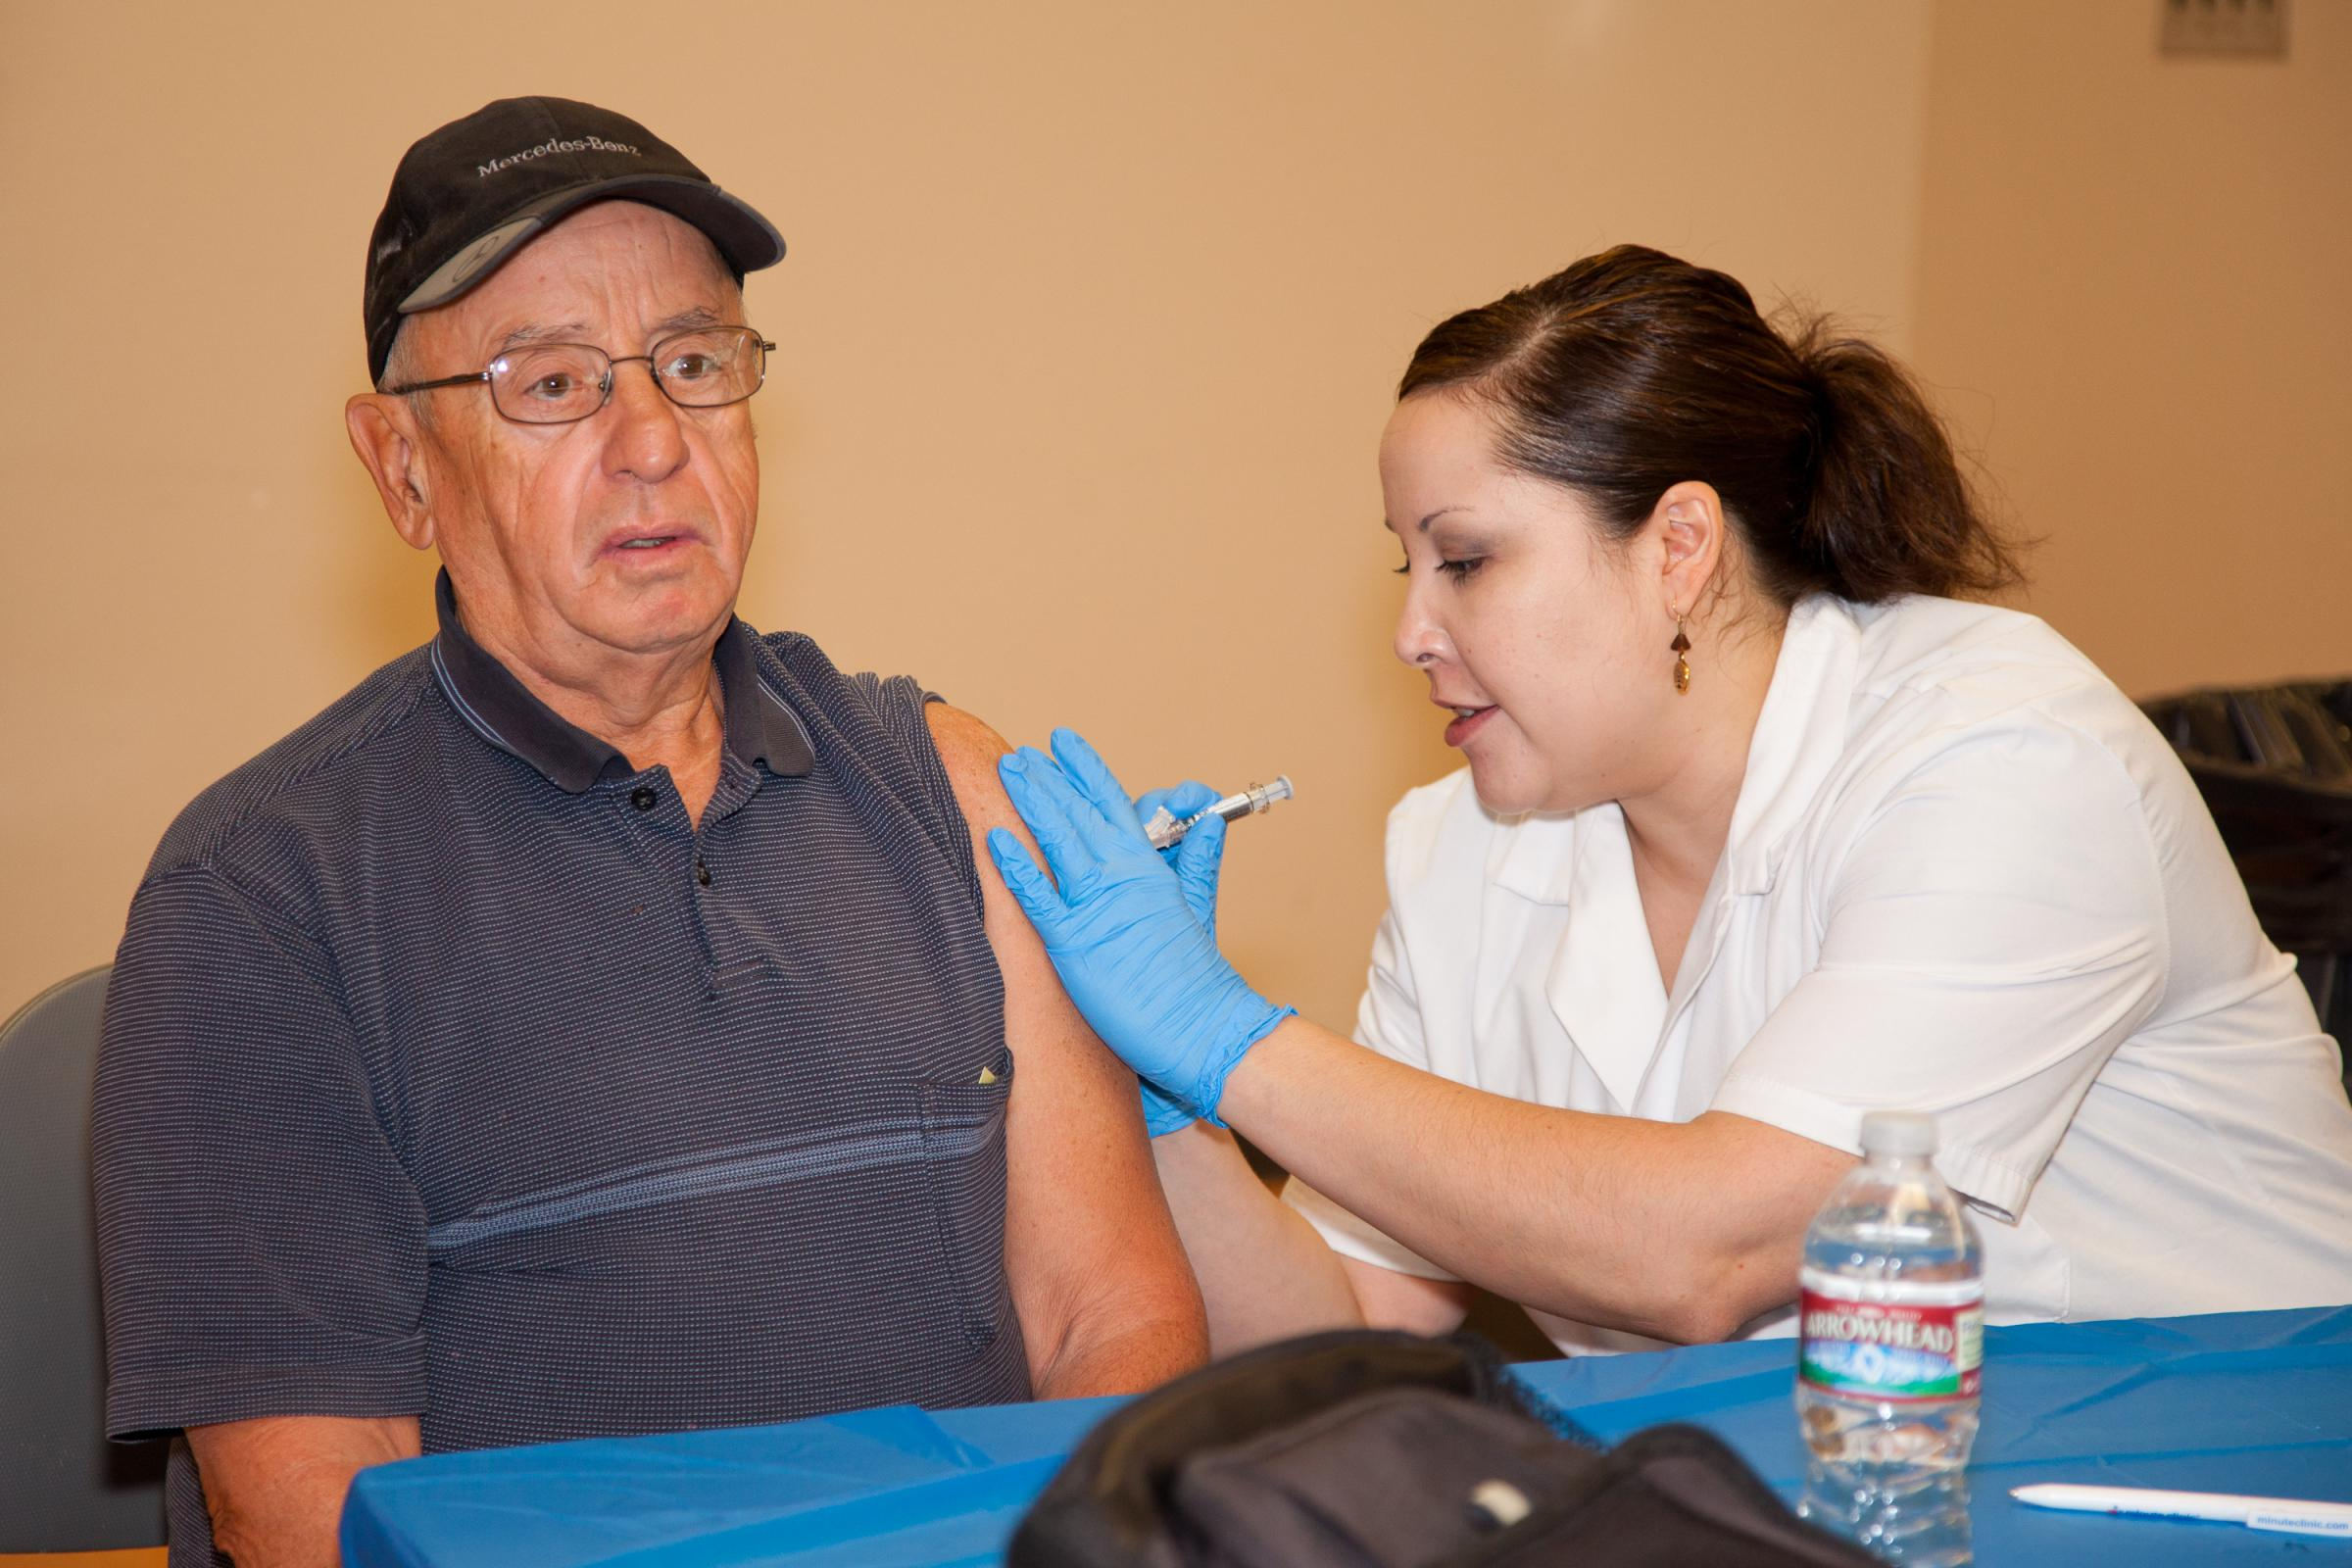 Flu activity is 'widespread' statewide. Still time to get vaccine, officials say